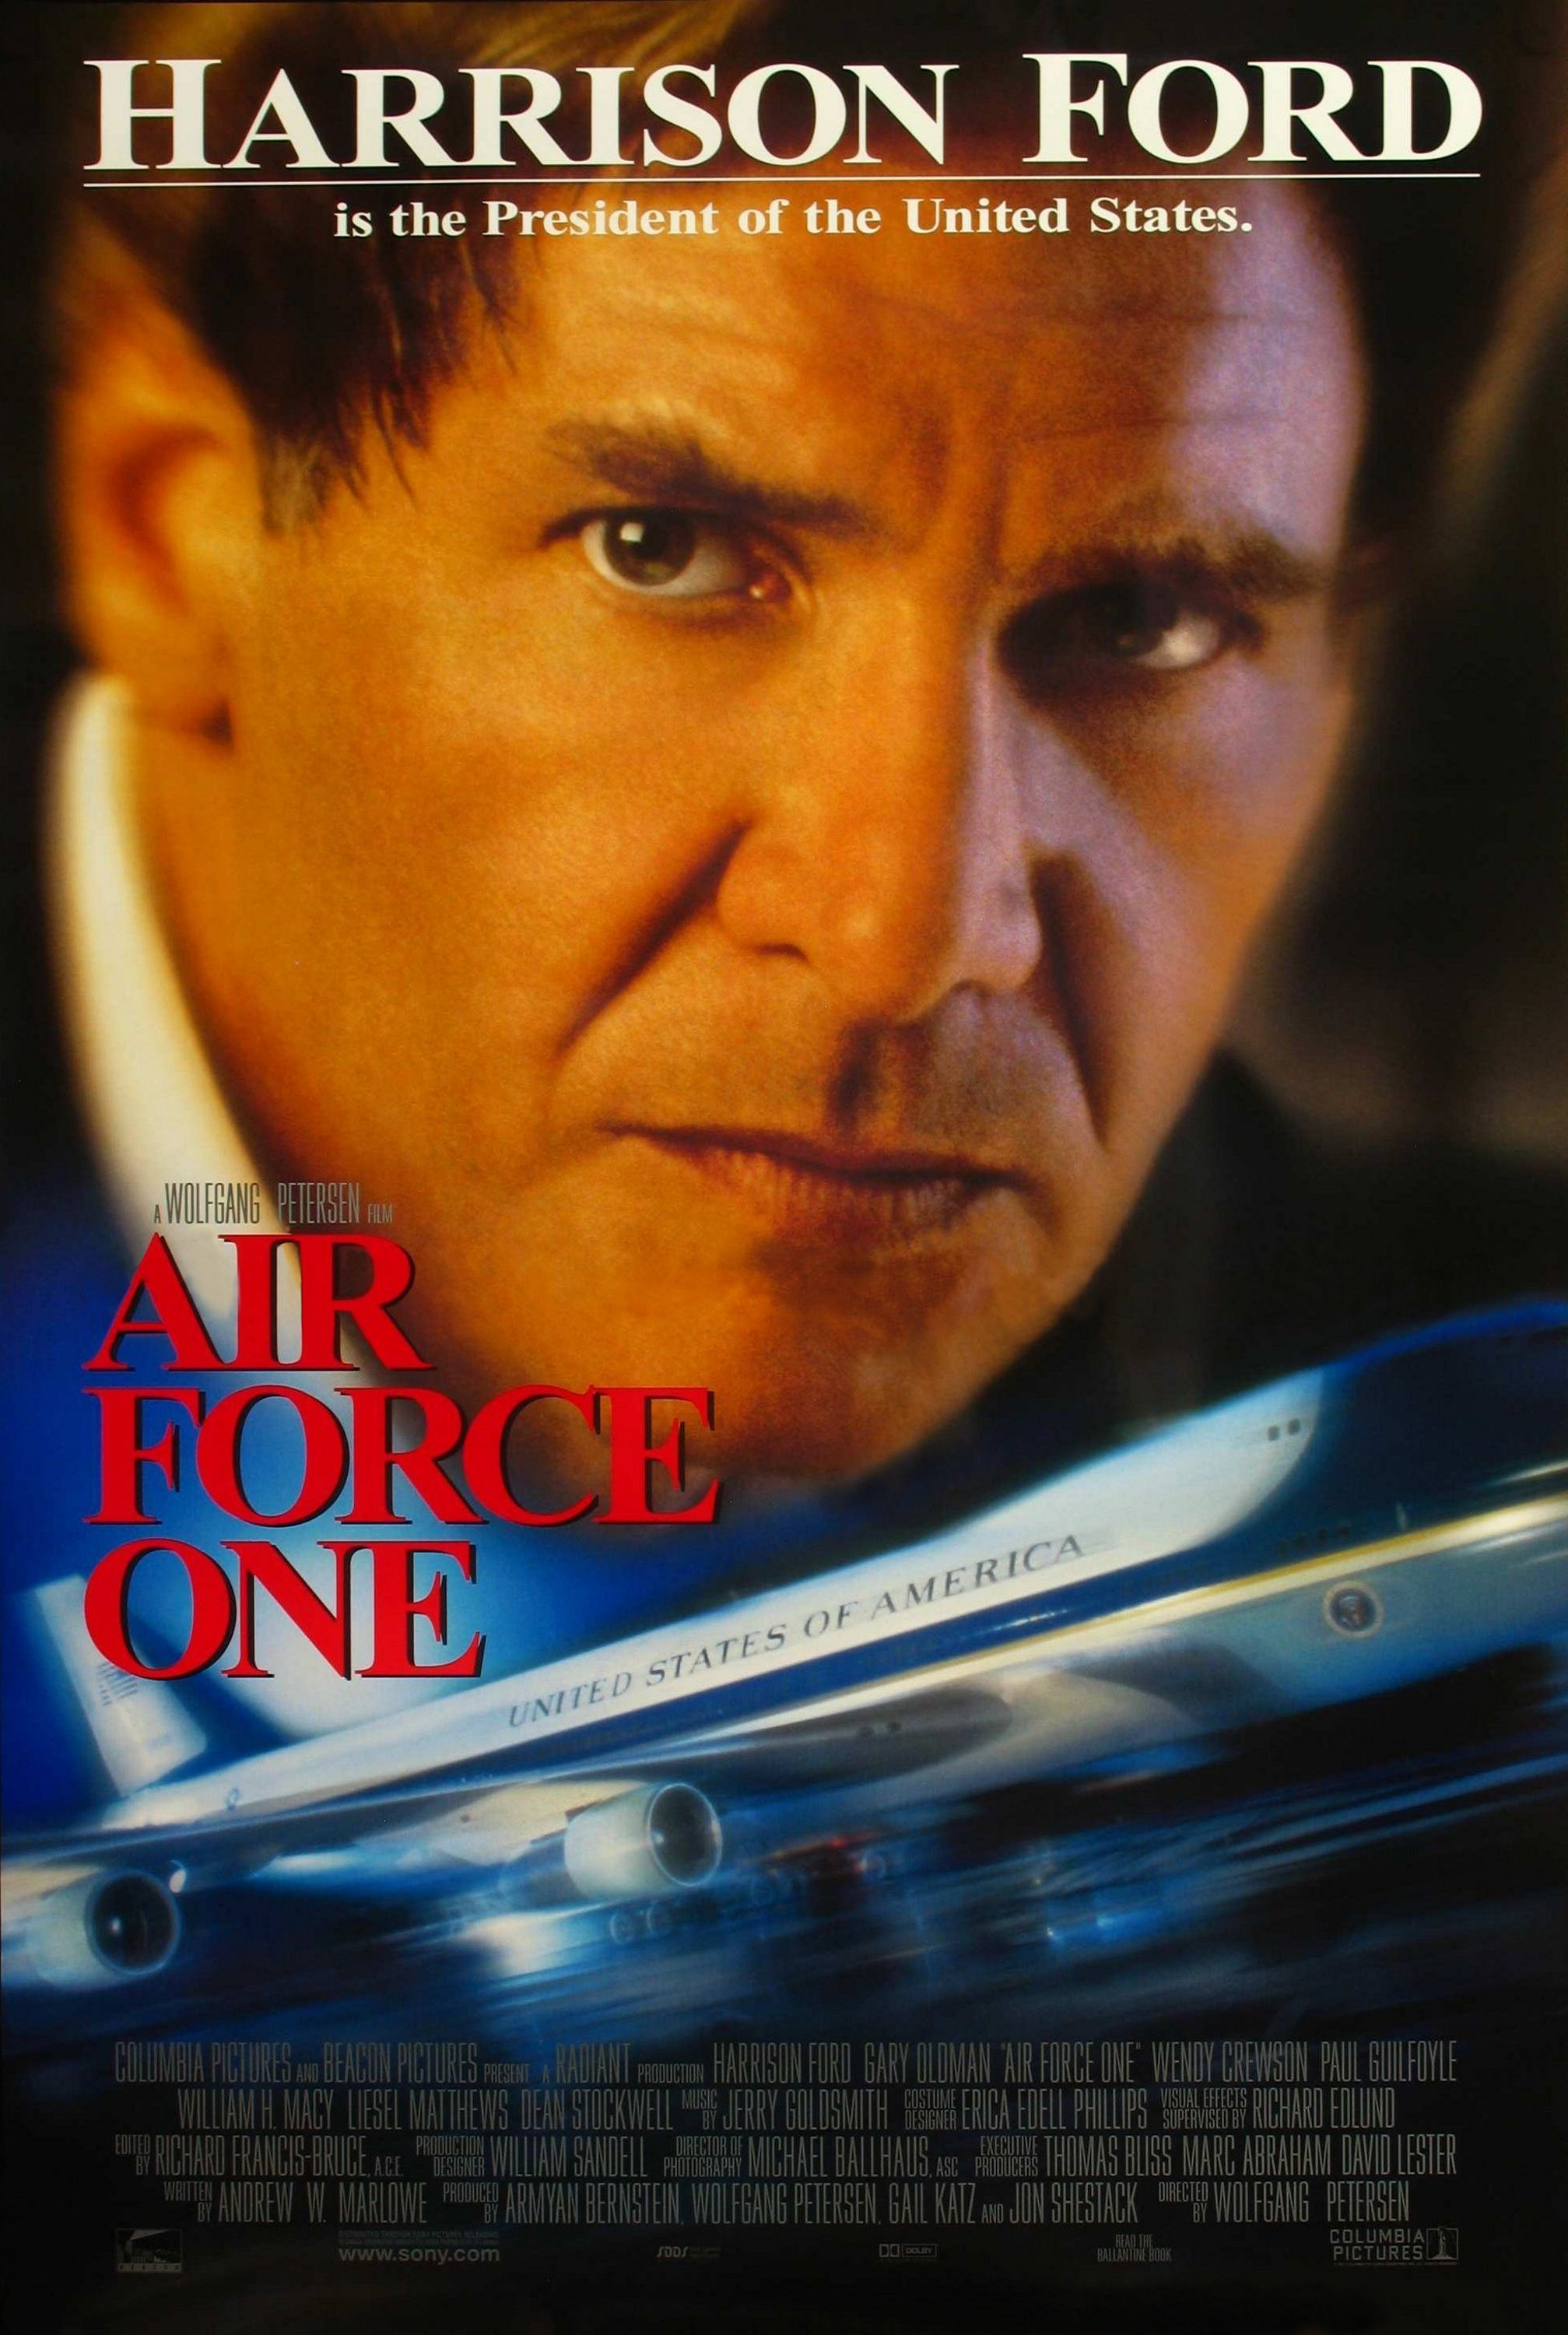 Image result for air force one movie poster